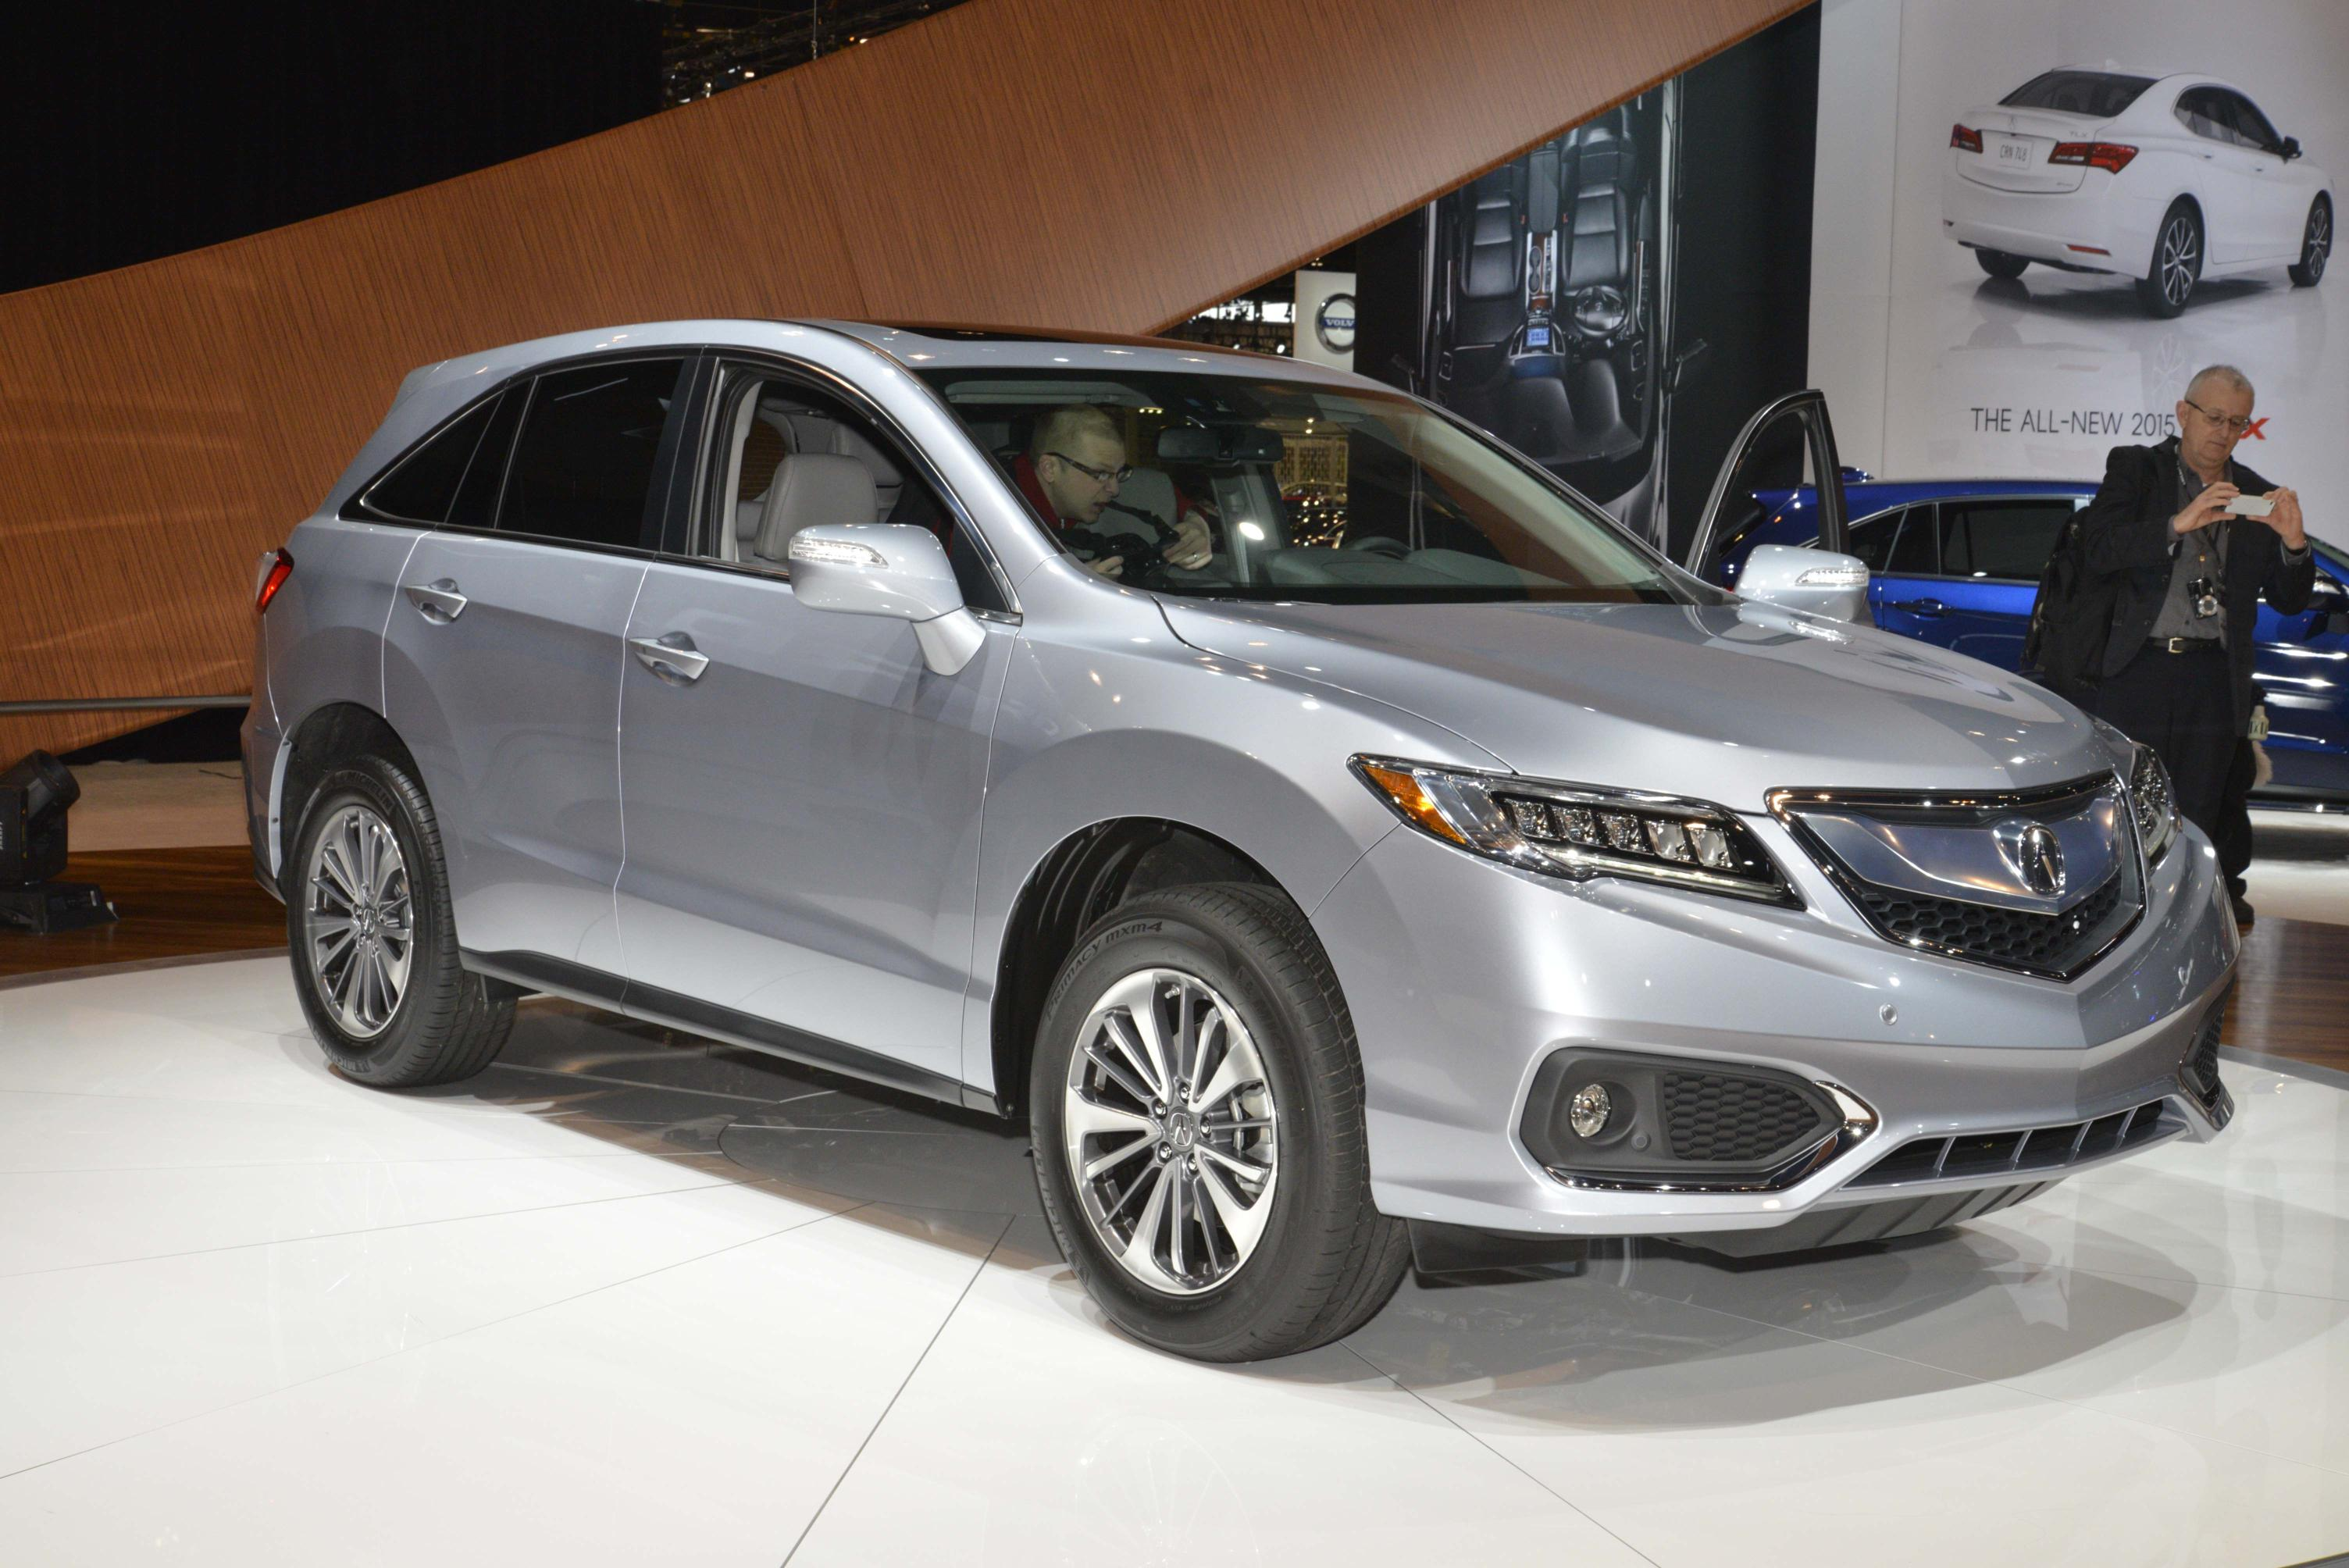 2016 ACURA RDX BRINGS THE HEAT IN WORLD DEBUT AT 2015 CHICAGO AUTO SHOW